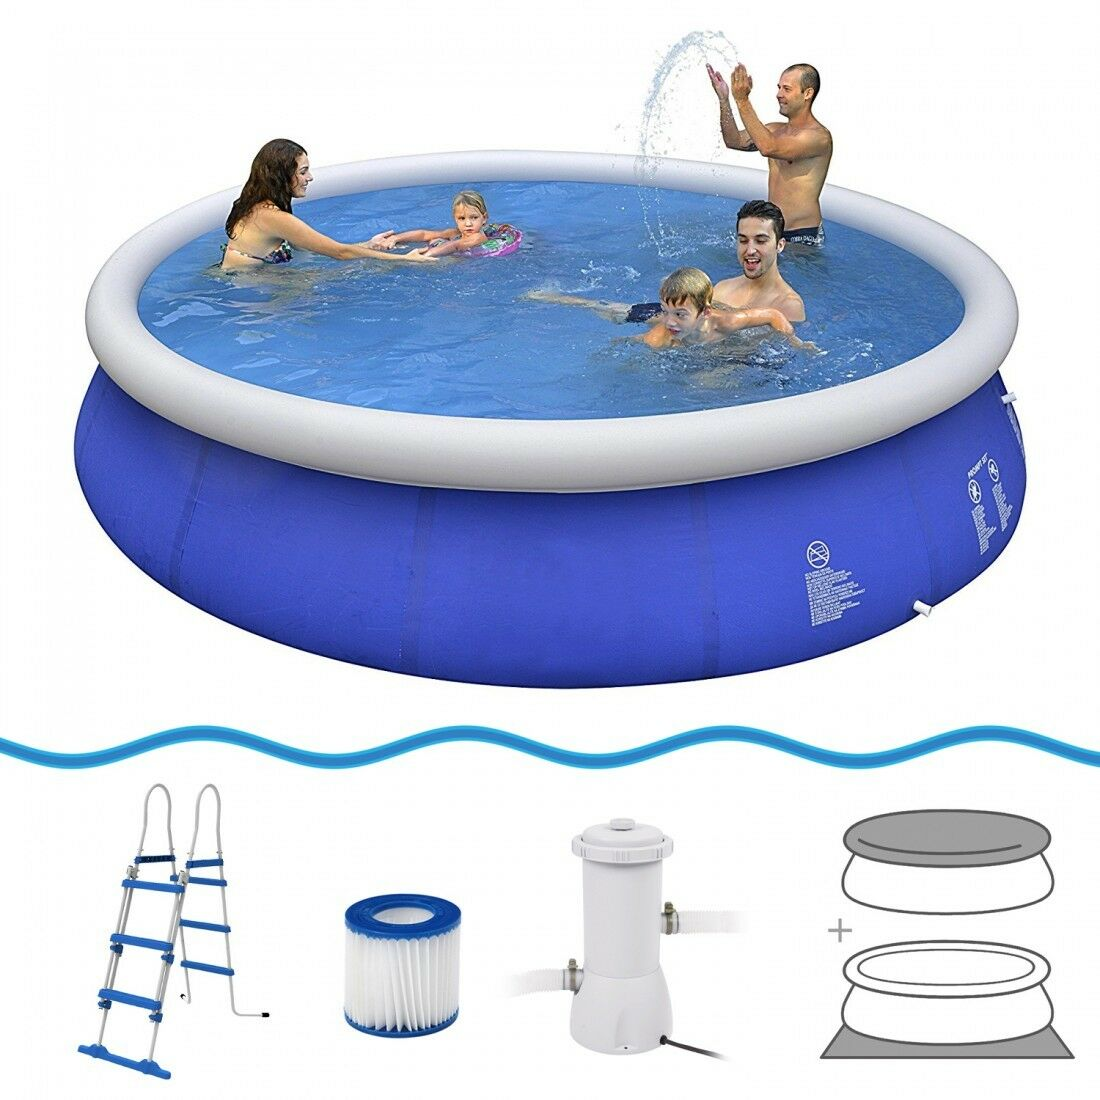 Jilong Prompt Set Pool Marin Blue 450 Set - set piscina quick up 450x90cm, con p